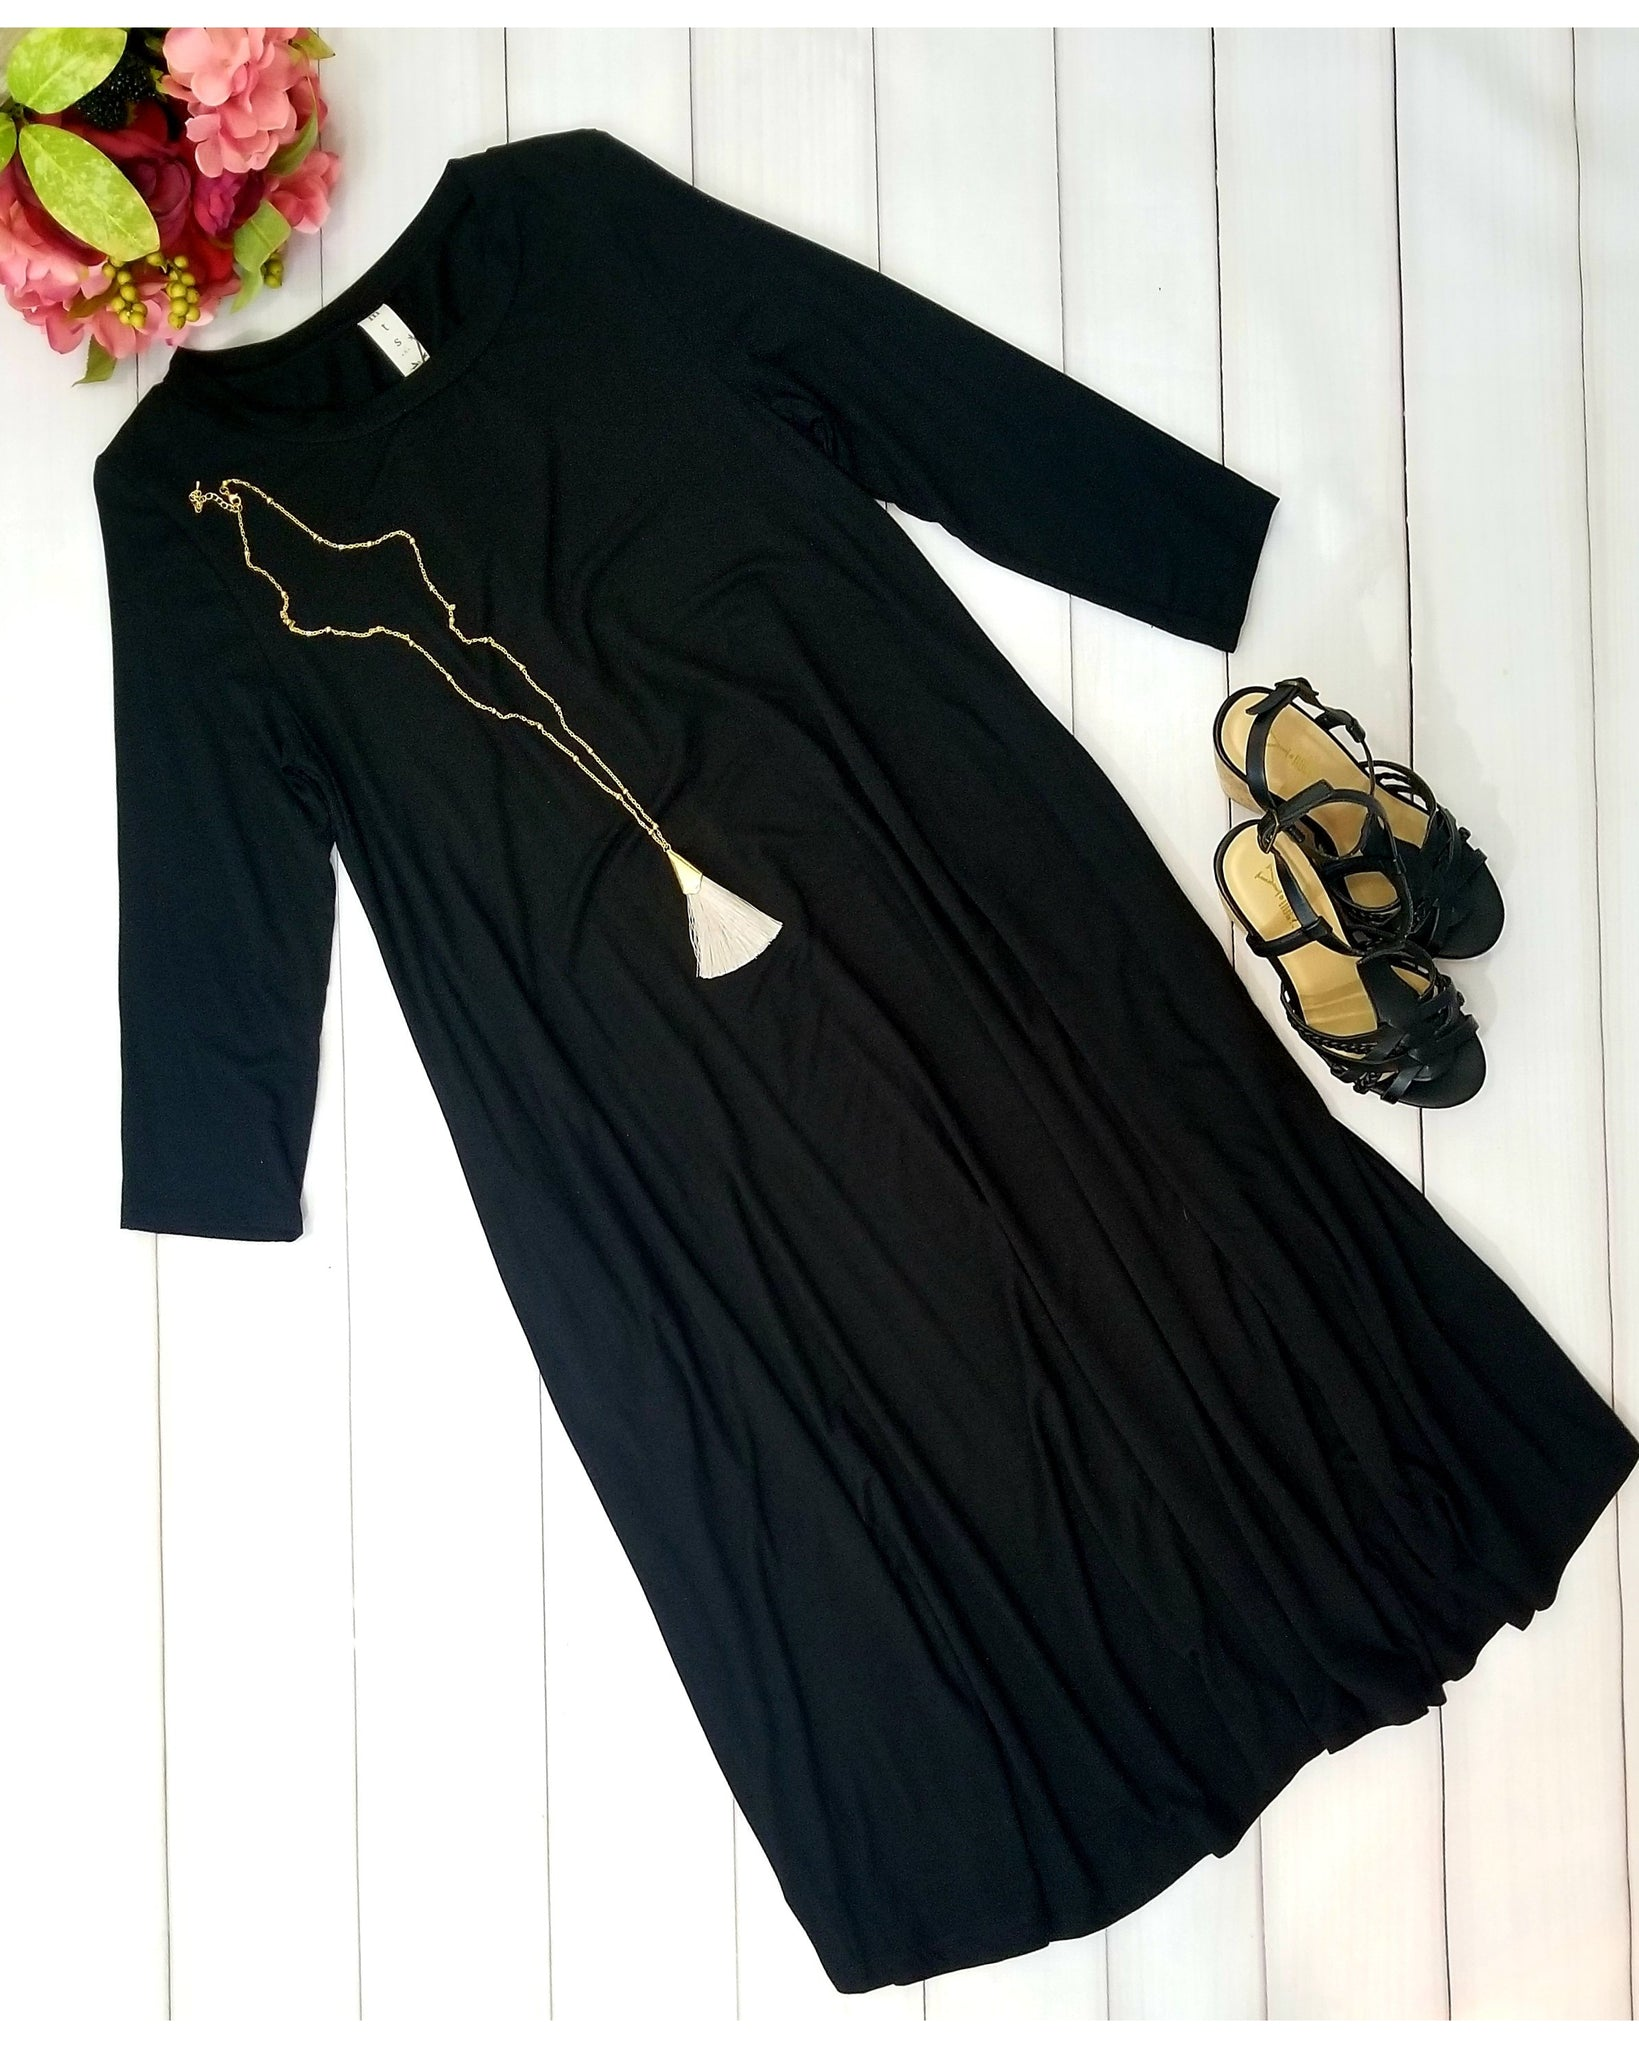 Bamboo Fabric Midi Dress with 3/4 Sleeves and Pockets in Black - Essentially Elegant